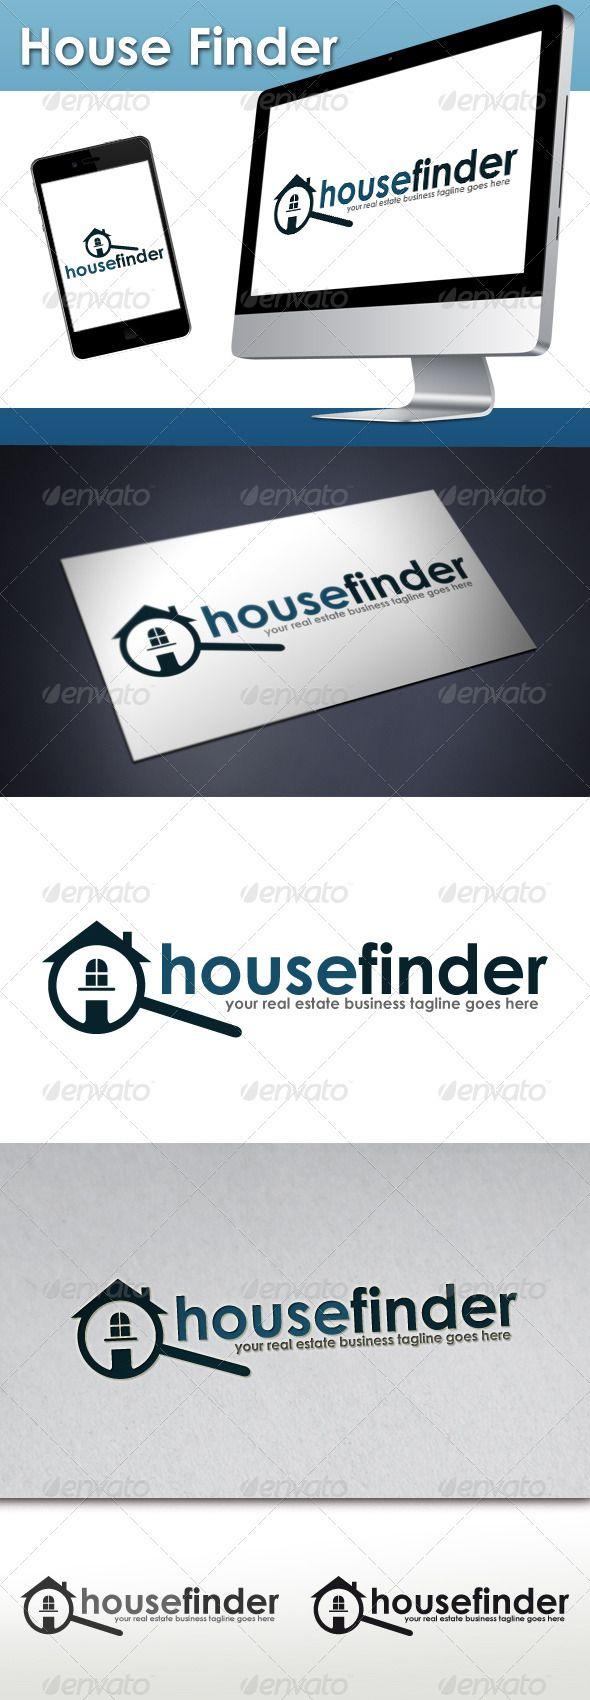 Real Estate House Finder  Logo Design Template Vector #logotype Download it here:  http://graphicriver.net/item/real-estate-house-finder-logo/3217427?s_rank=628?ref=nesto